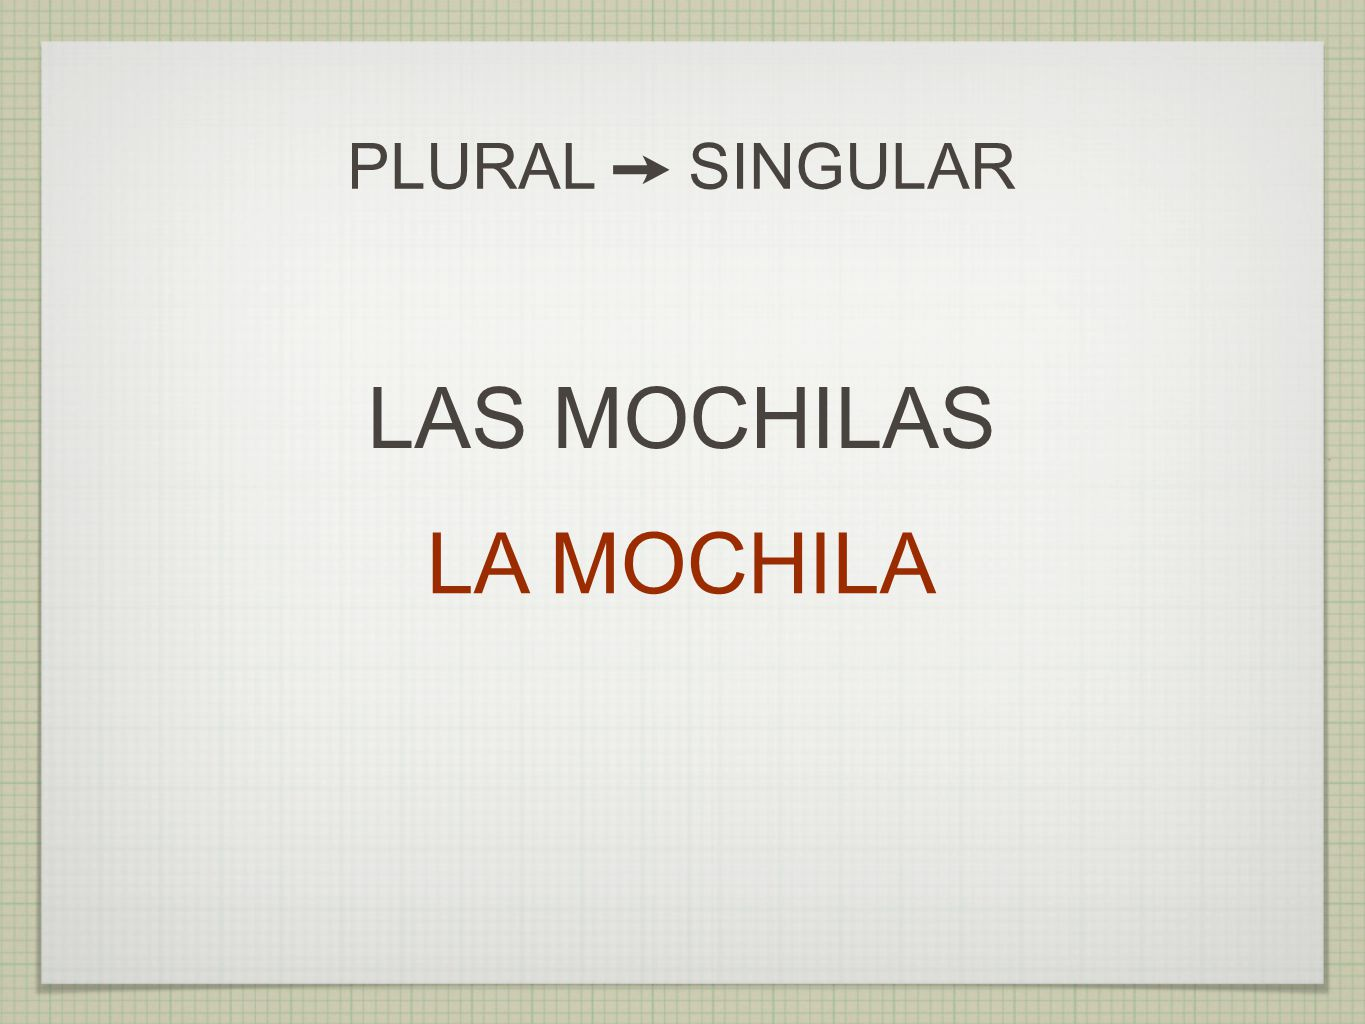 Spanish 2 Objetivo: Students will pluralize nouns and articles in ...